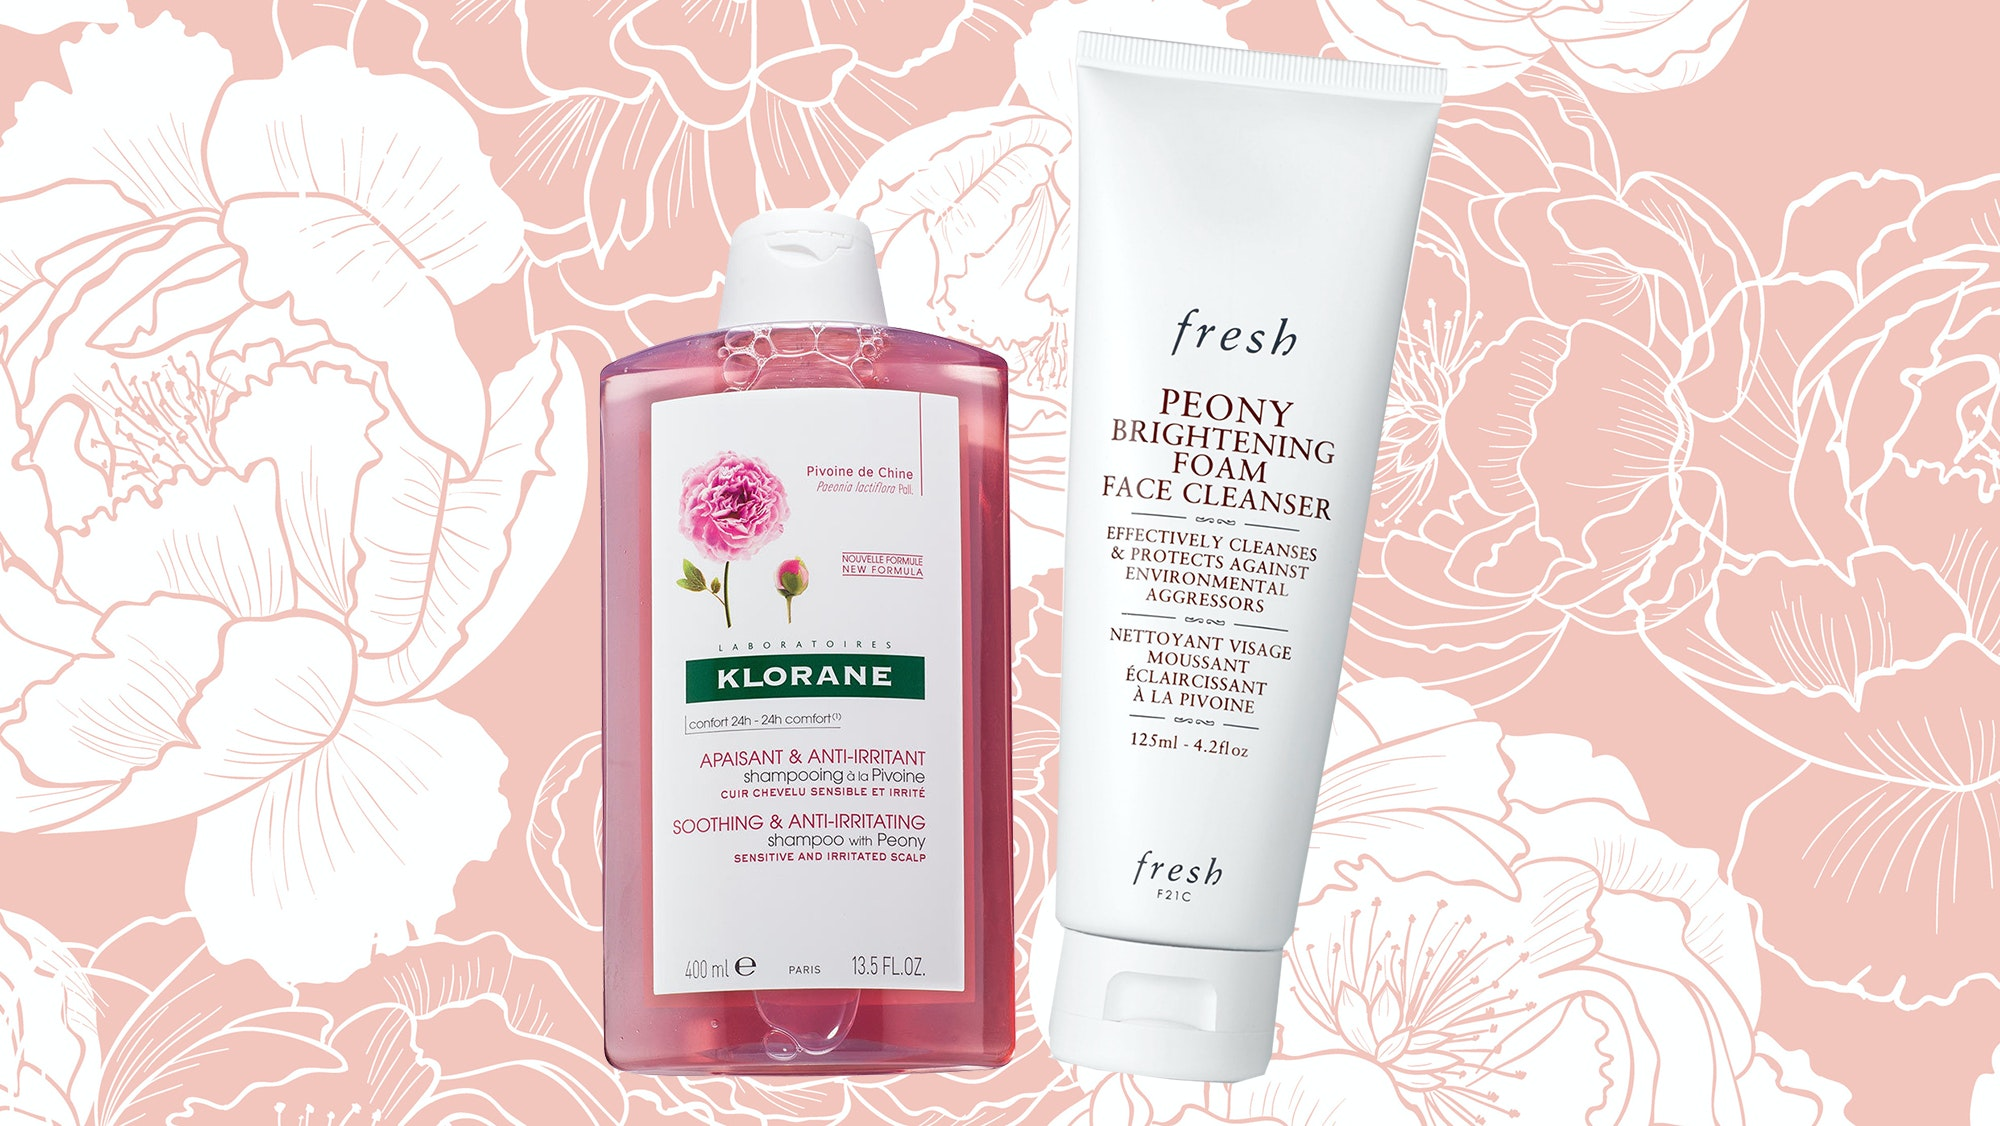 Spotlyte 7: Peony Products That'll Put Some Spring in Your Beauty Routine